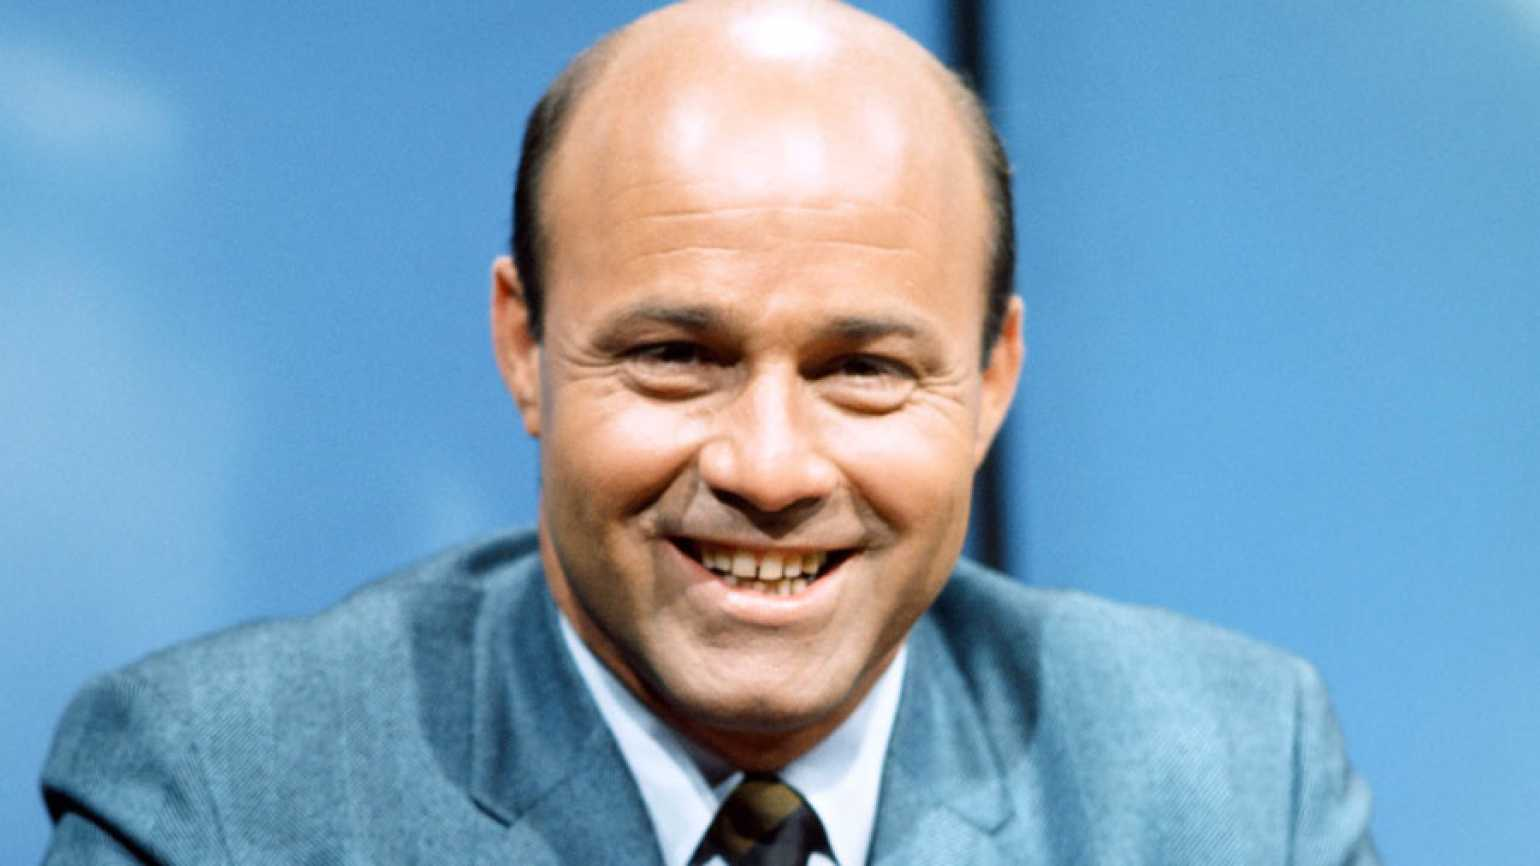 Guideposts: Joe Garagiola during his stint as a host on the Today Show